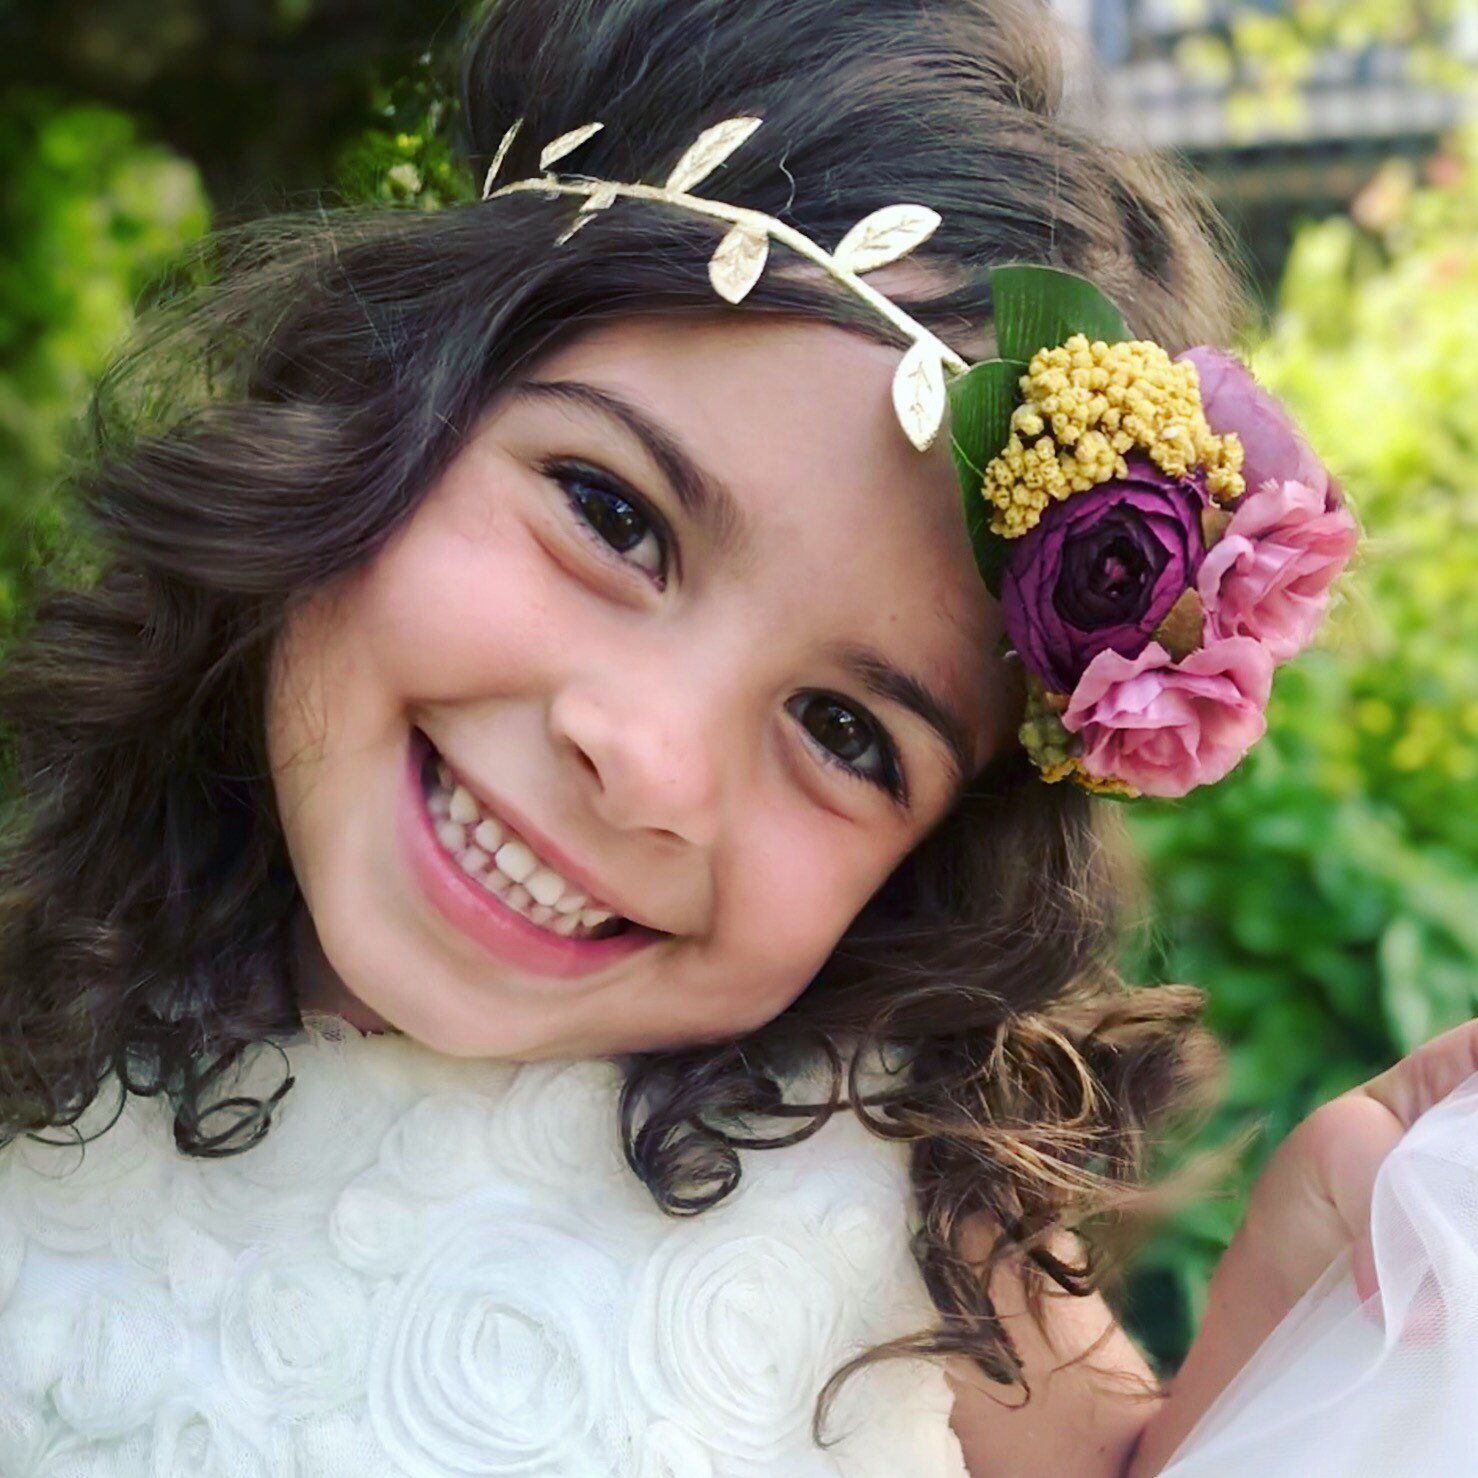 Fall Wedding Hairstyles With Flower Crown: Fall Headband, Flower Crown, Wedding Hair Clip